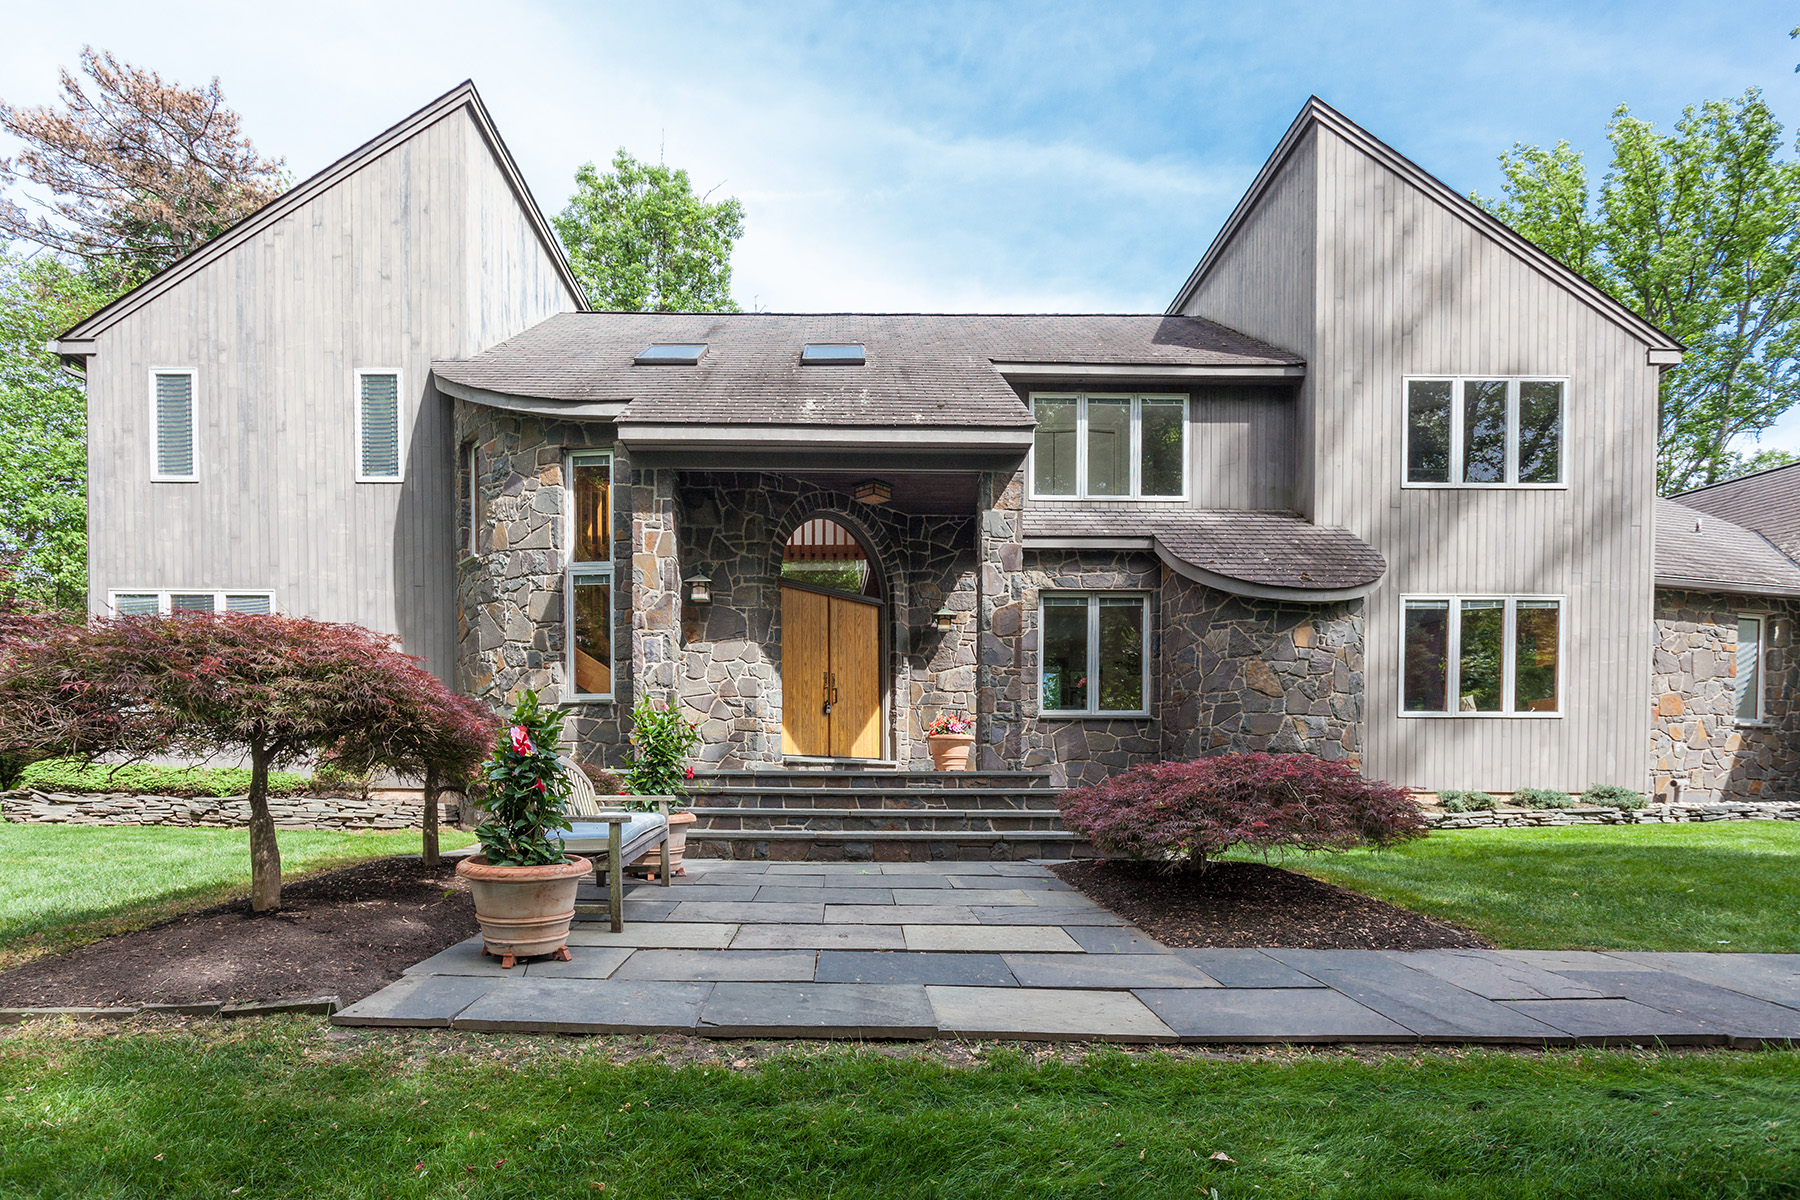 Single Family Home for Sale at Stunning Custom Contemporary 1700 Kreibel Mill Rd. Worcester, Pennsylvania 19426 United States